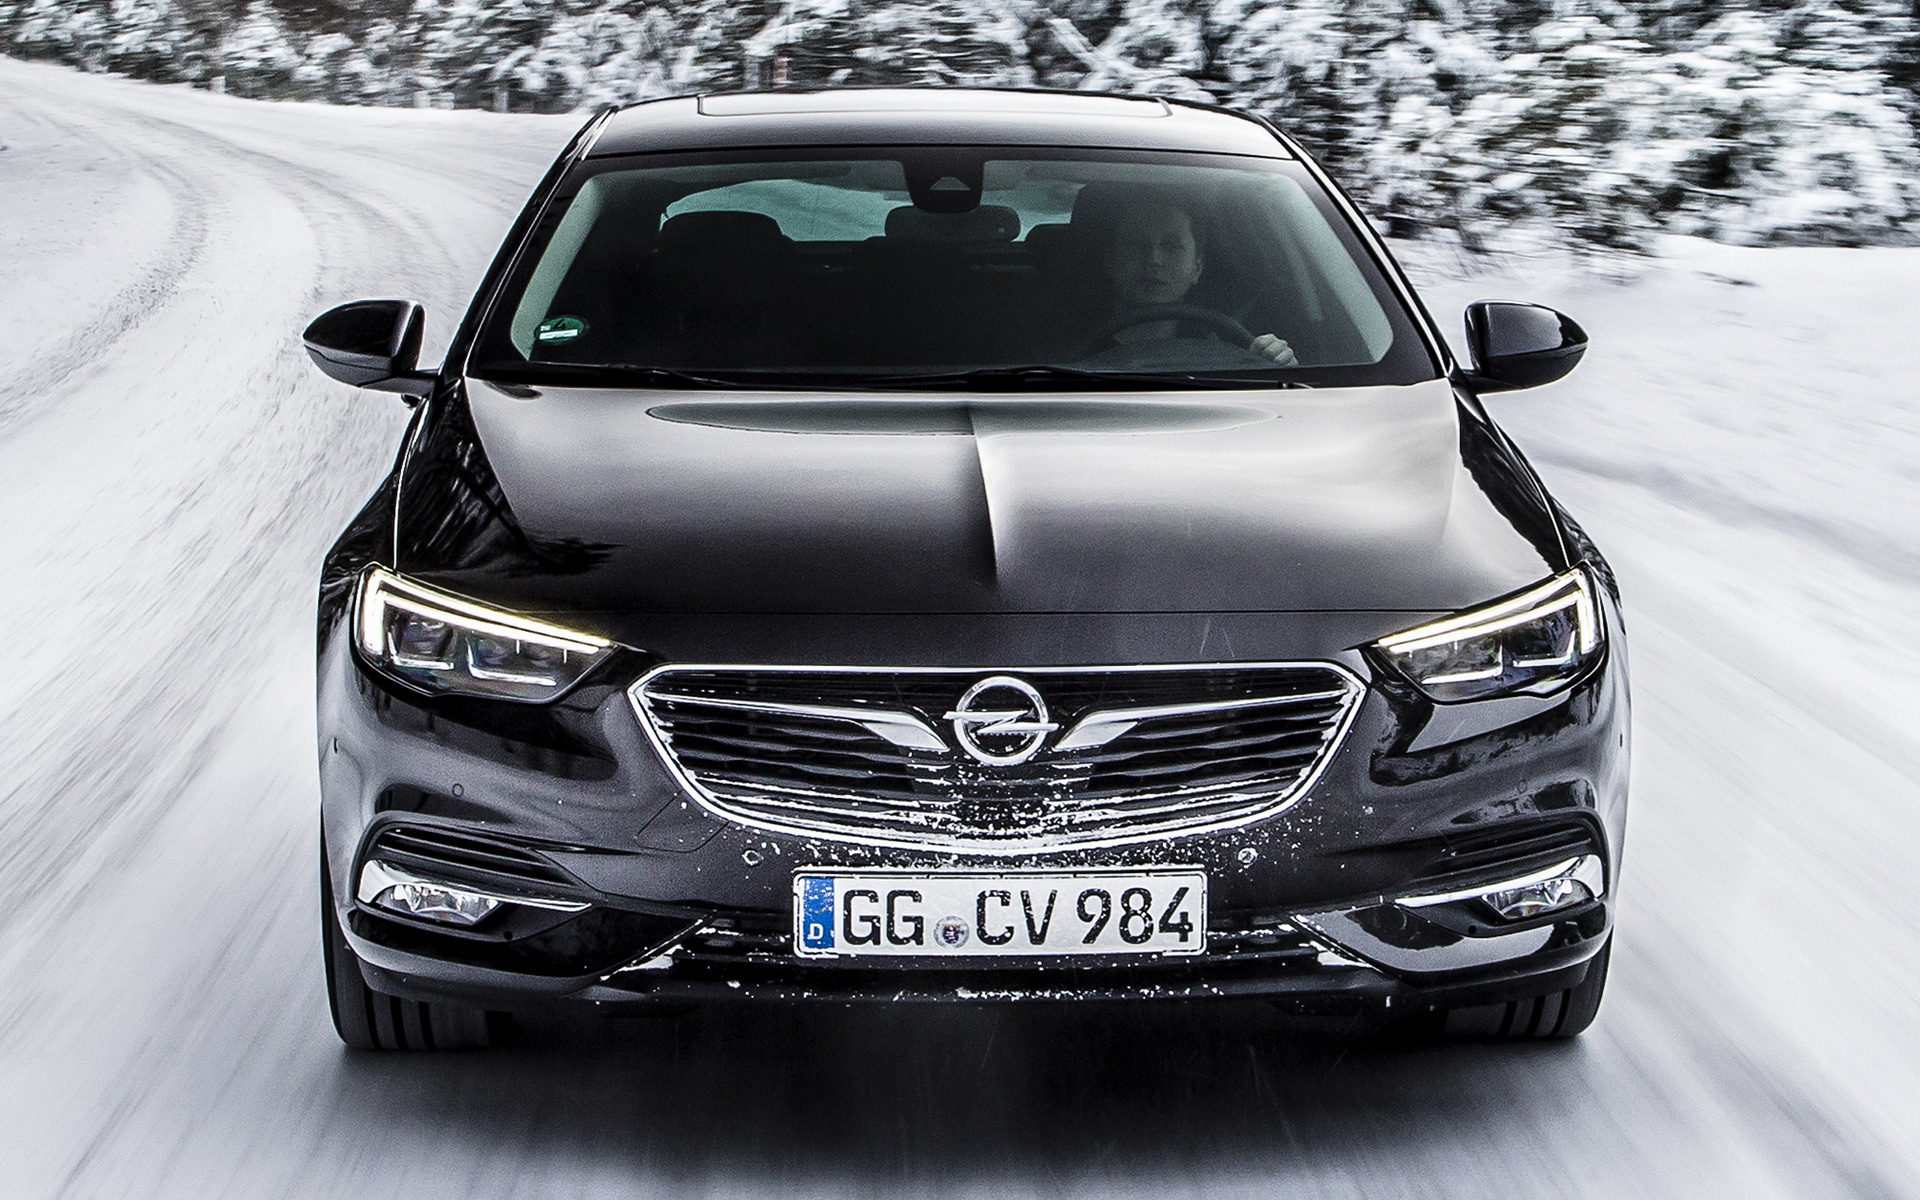 2017 Opel Insignia Grand Sport   Wallpapers and HD Images Car Pixel 1920x1200